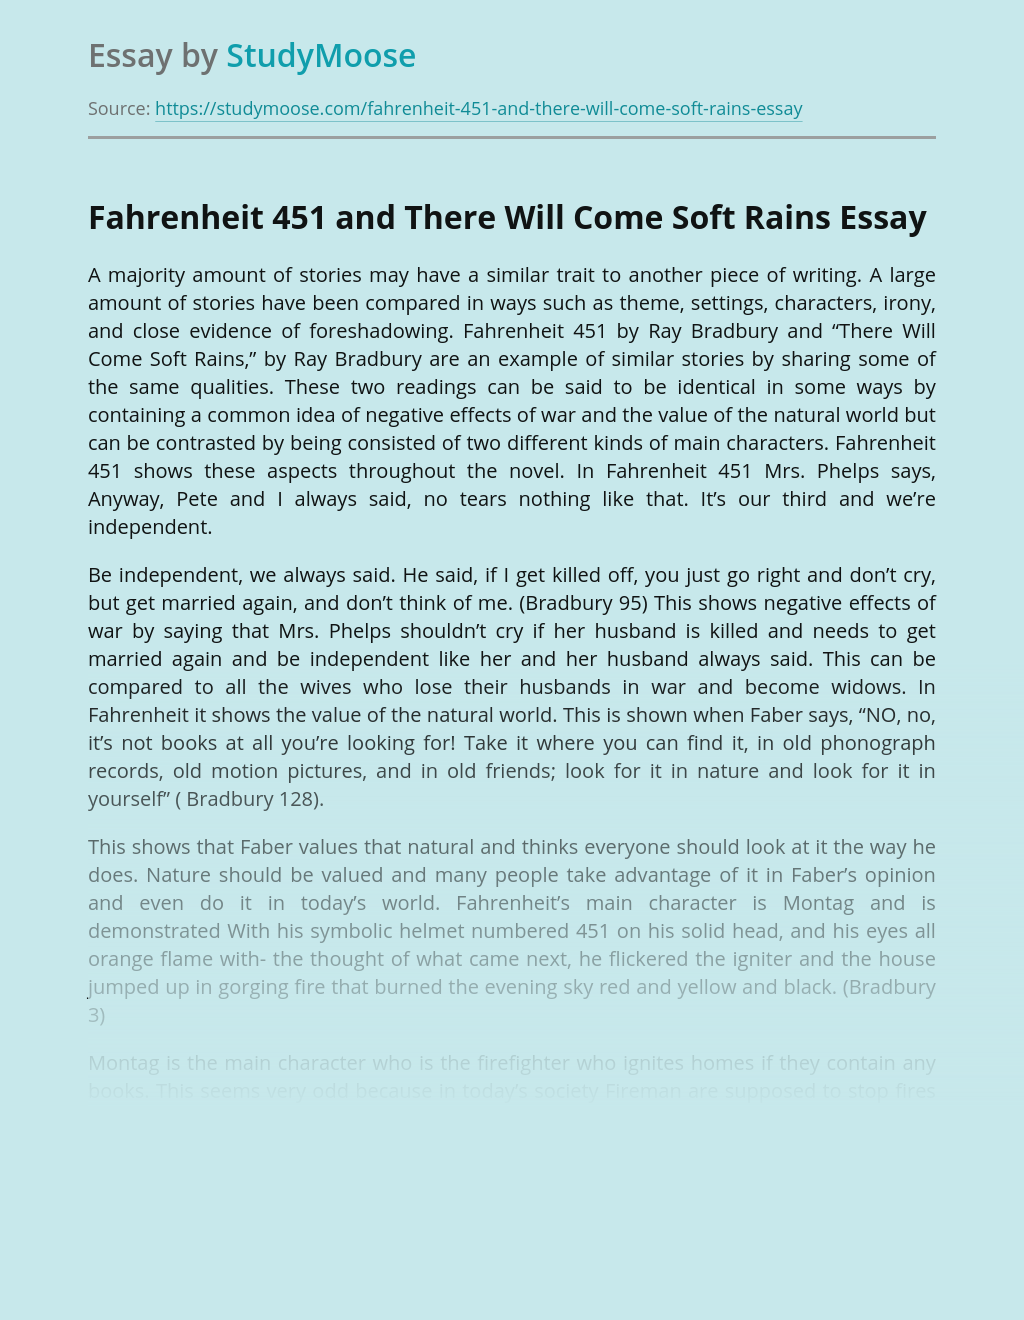 Fahrenheit 451 and There Will Come Soft Rains